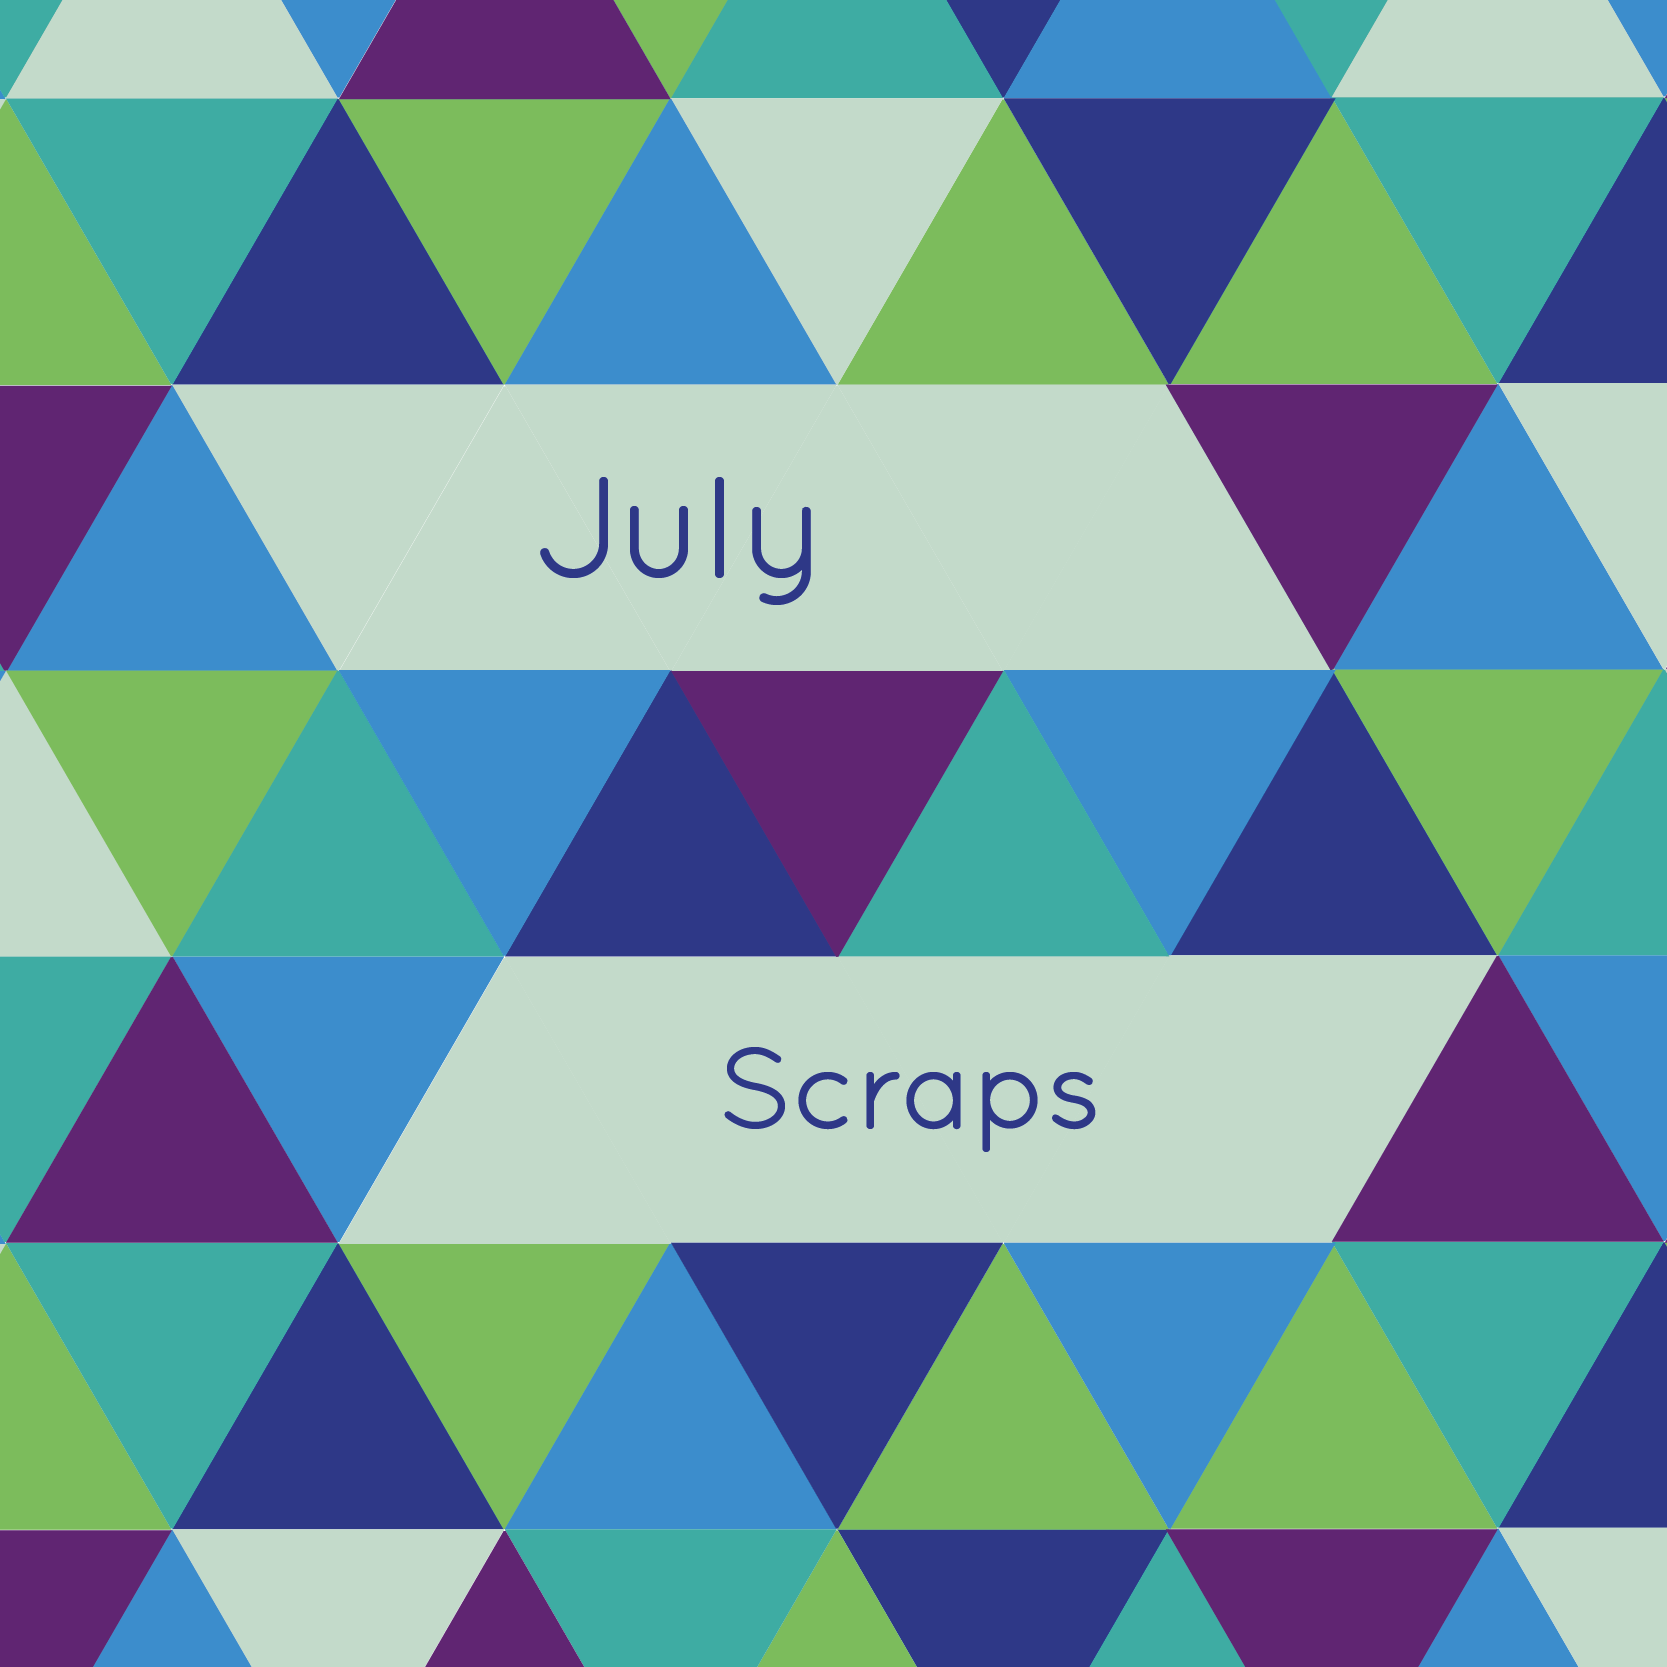 52 Quilters July 2018 – Scraps